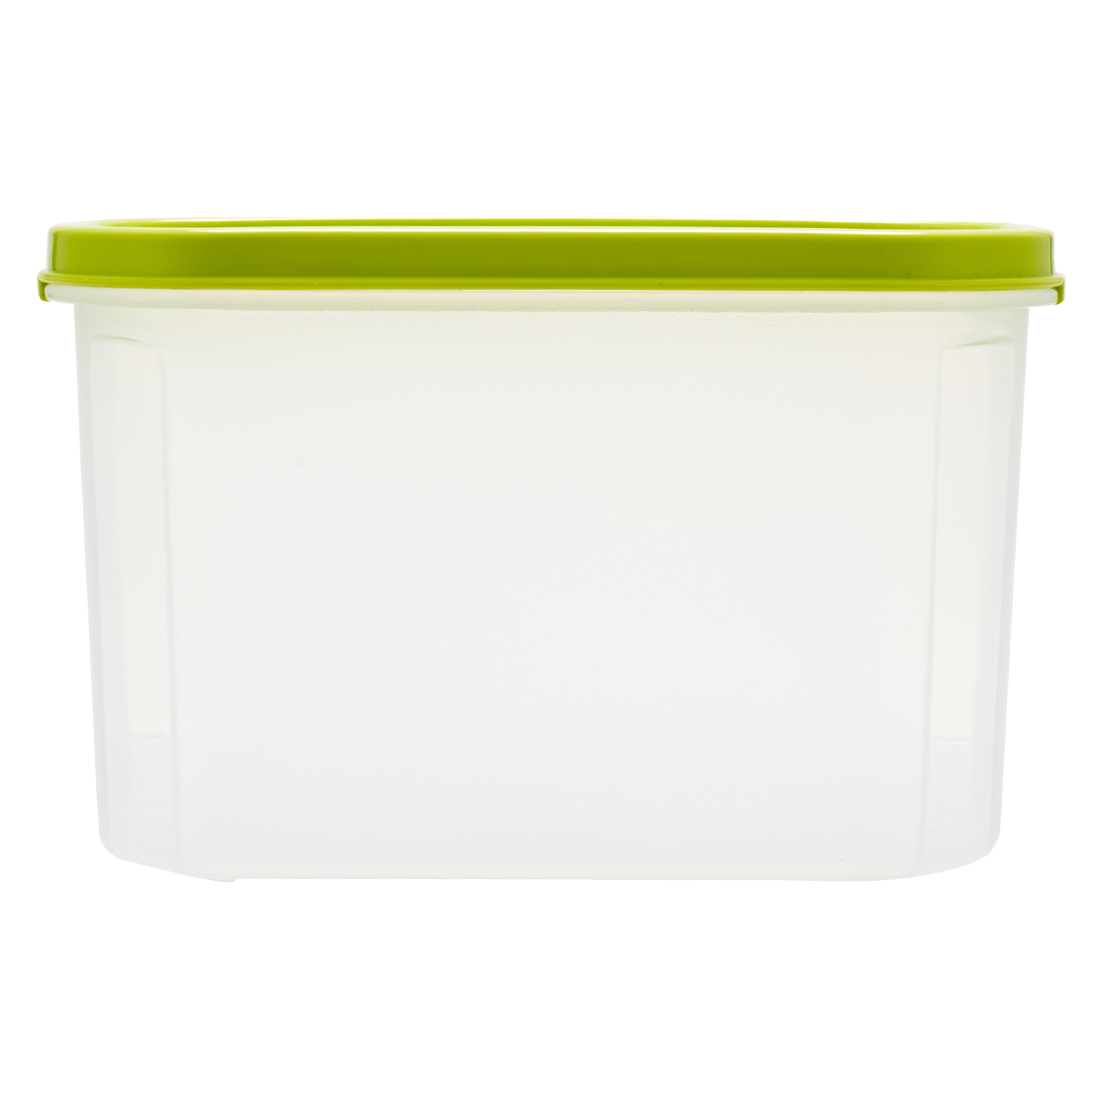 Kitchen Modular Oval 1200 Ml Green Plastic Containers in Green Colour by Living Essence